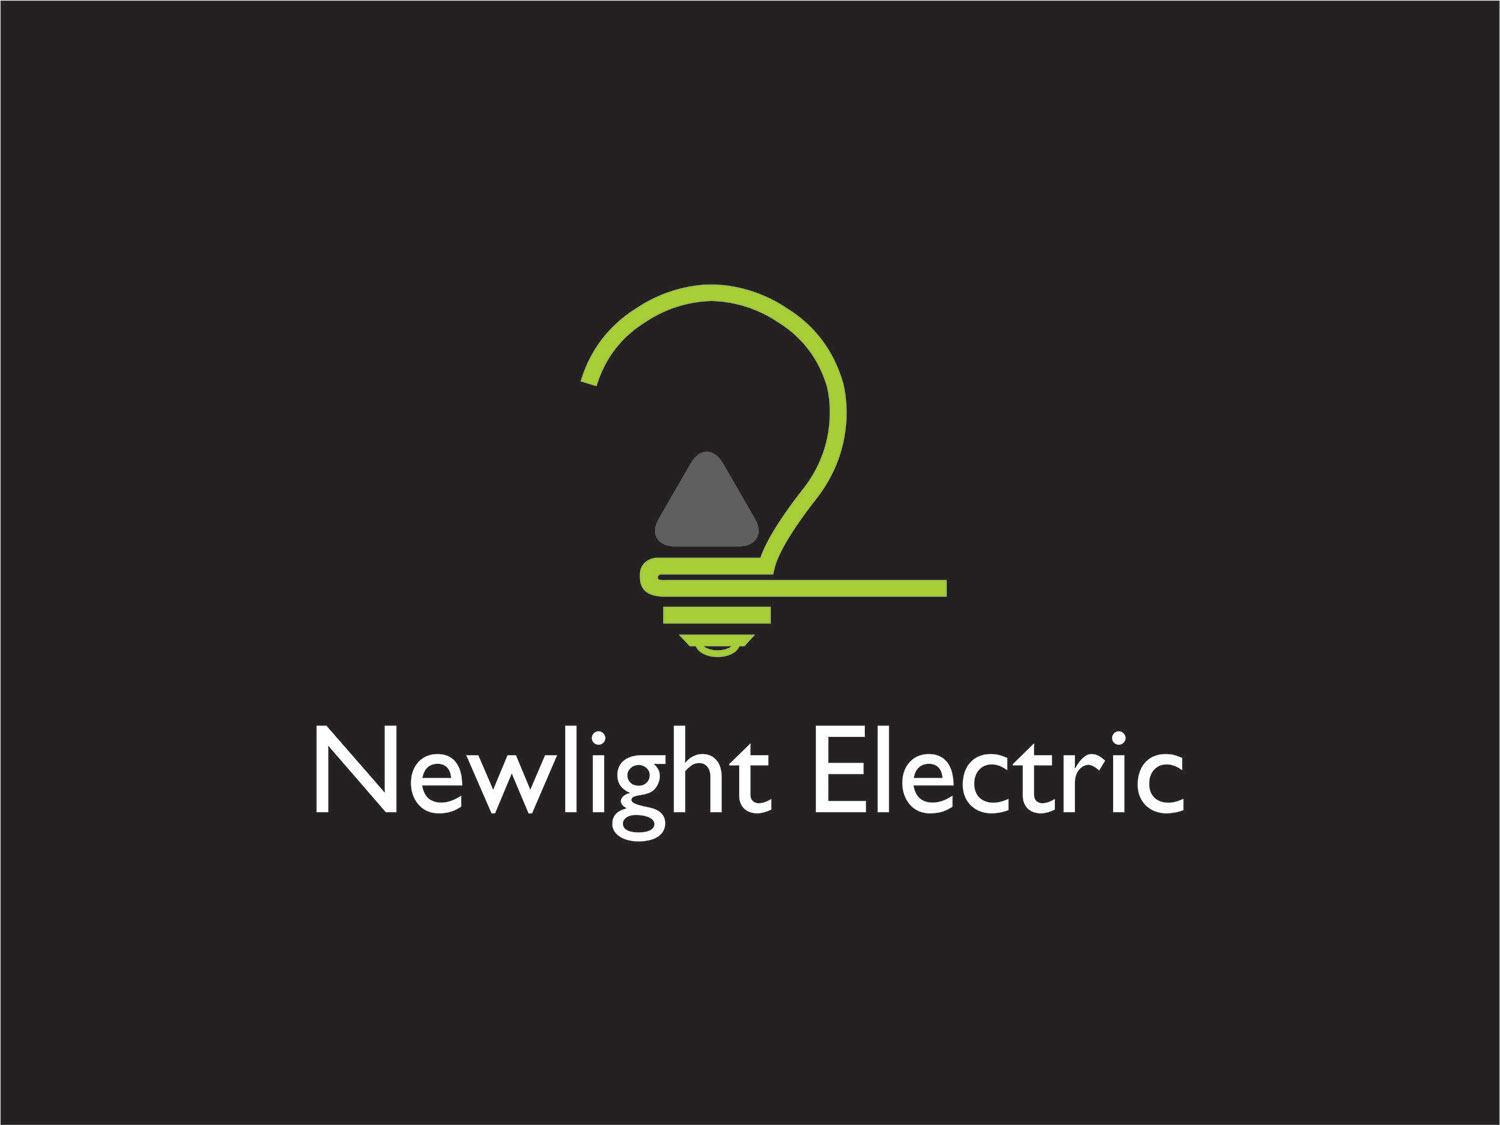 Serious Modern Electrical Logo Design For Newlight Electric By Jetweb Design 13908731,Design Your Own Mug Online